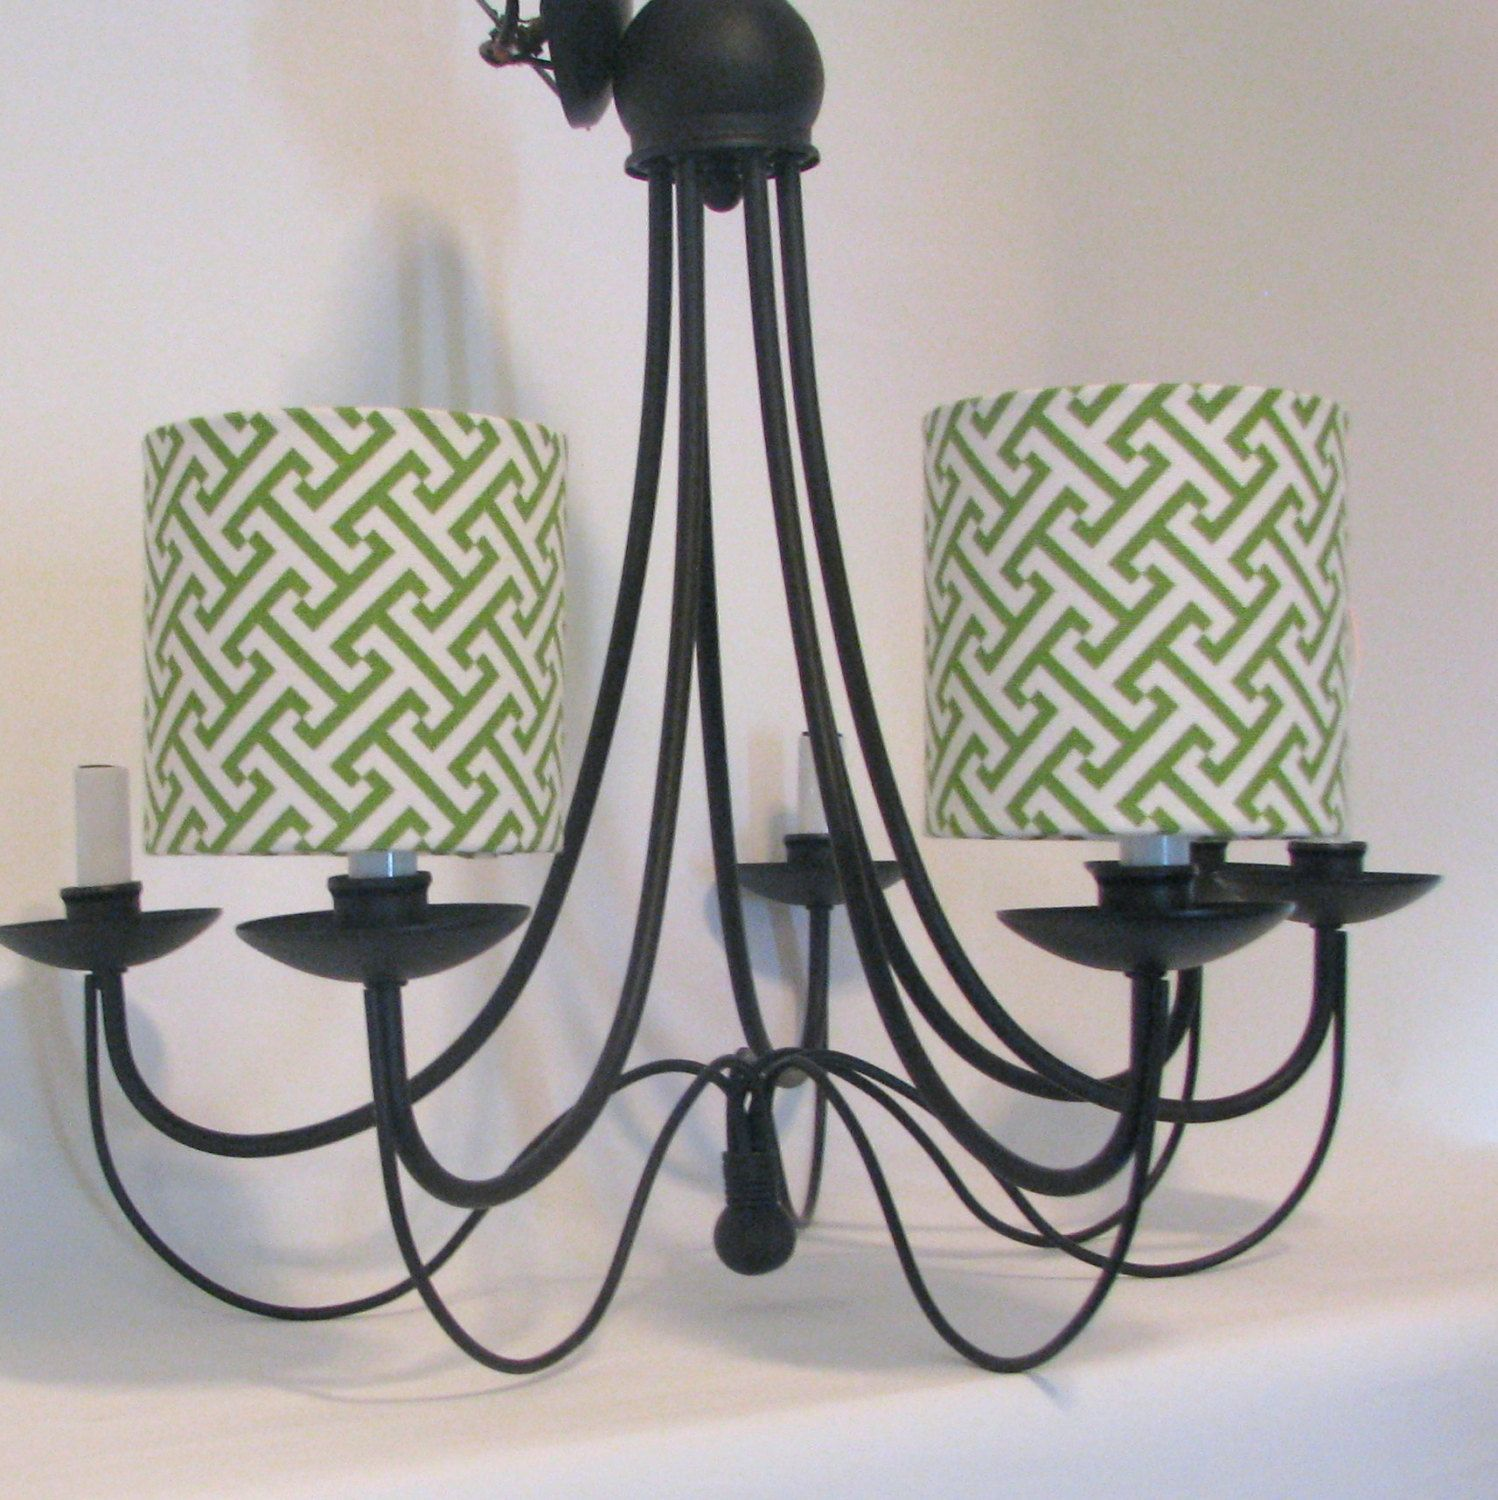 Chandelier Shade Or Sconce Drum Style In Green And White Cross Section By Waverly